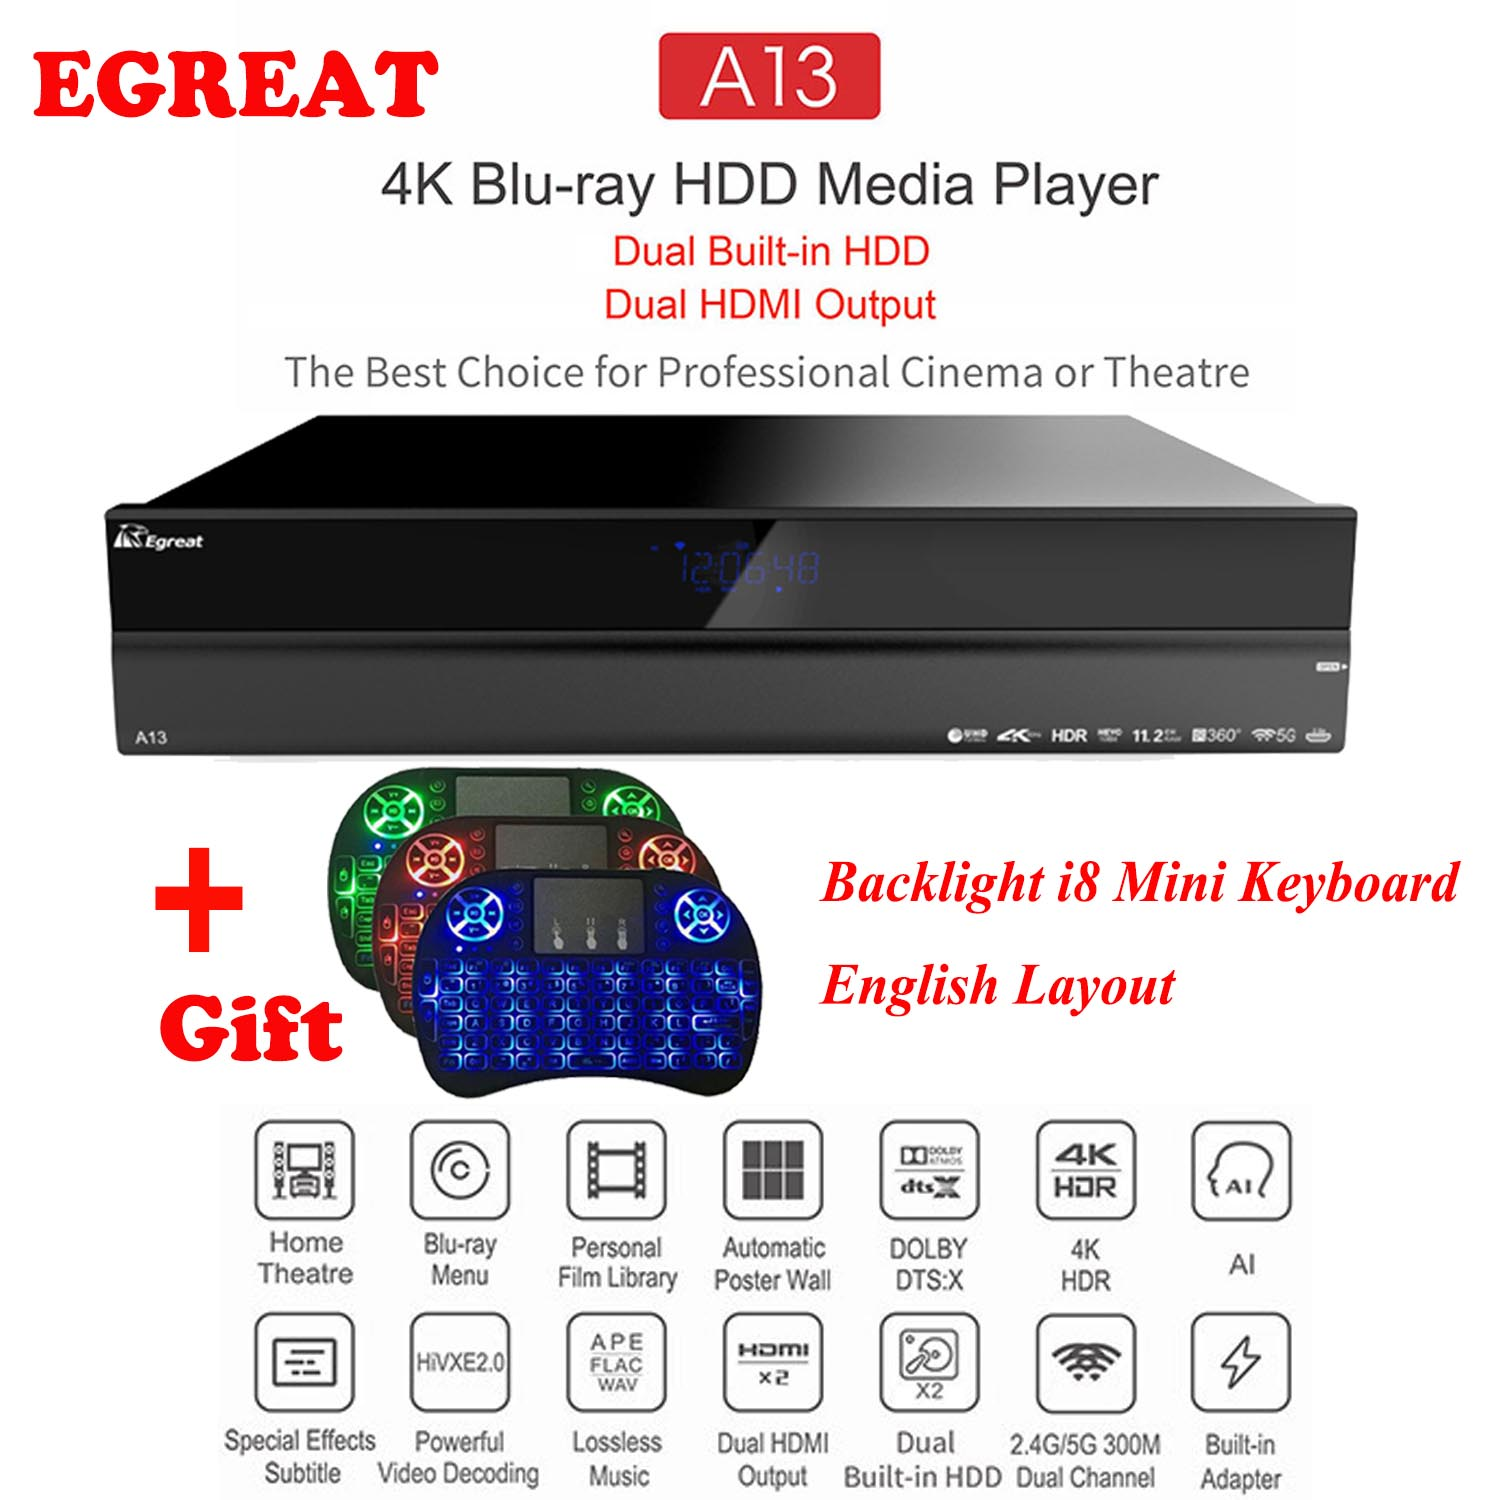 2019 High-end Sistema de Home Theatre Egreat A13 4 K UHD Blu-ray HDD Media Player, dupla HDD Embutido, Dual Saída HDMI Caixa de TV Android